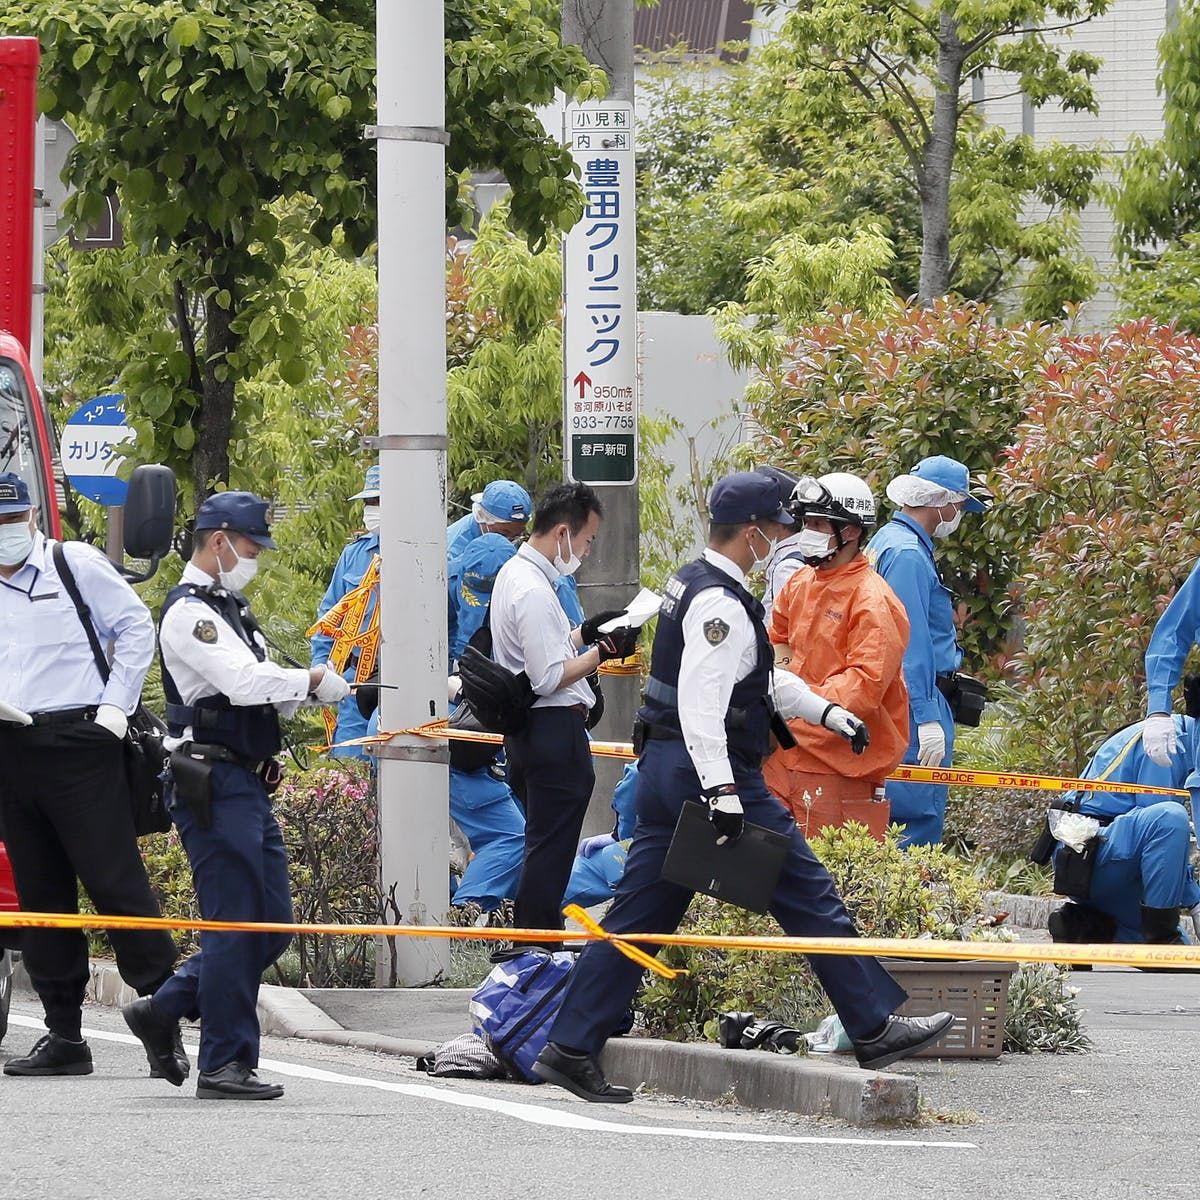 Despite Japan's low crime rates, it's seen a number of mass